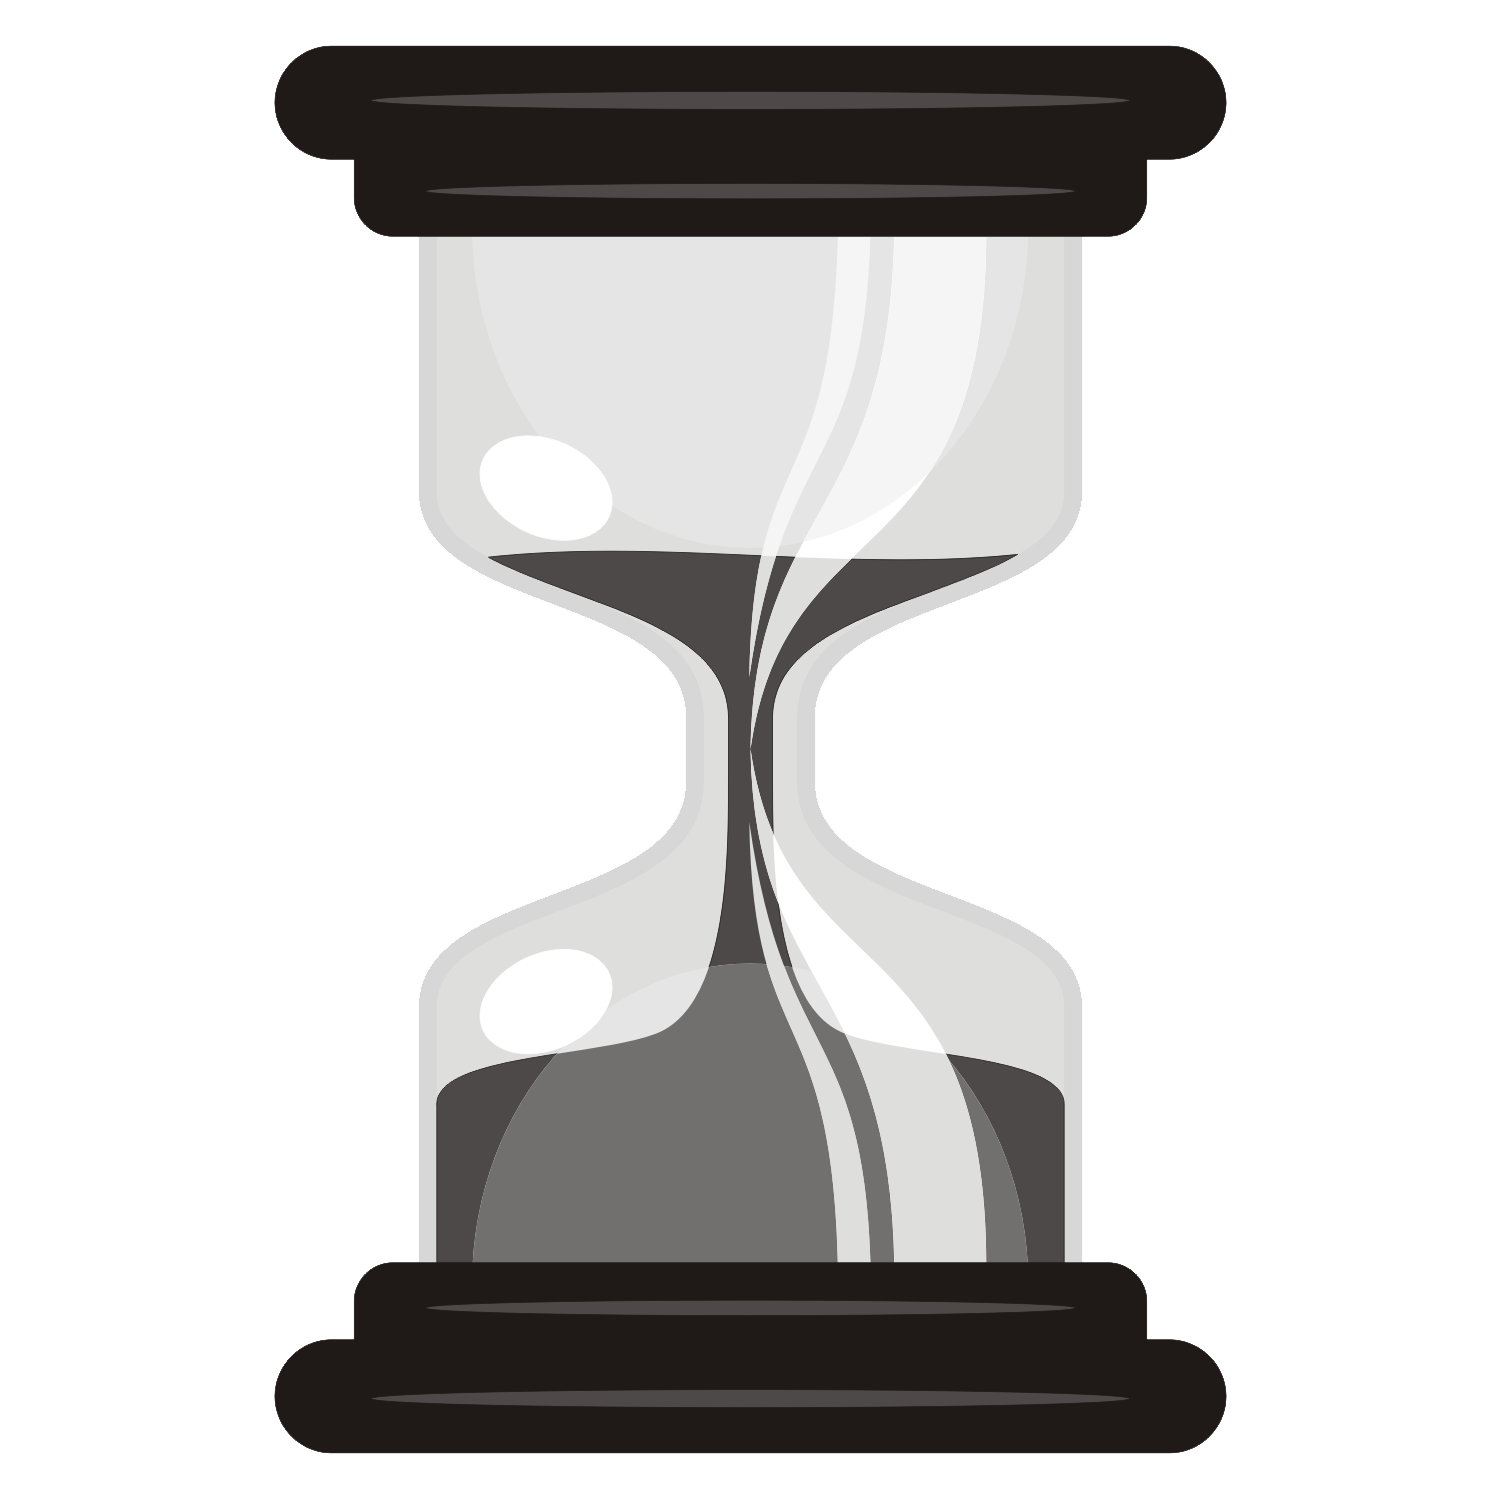 Hourglass PNG - 28169